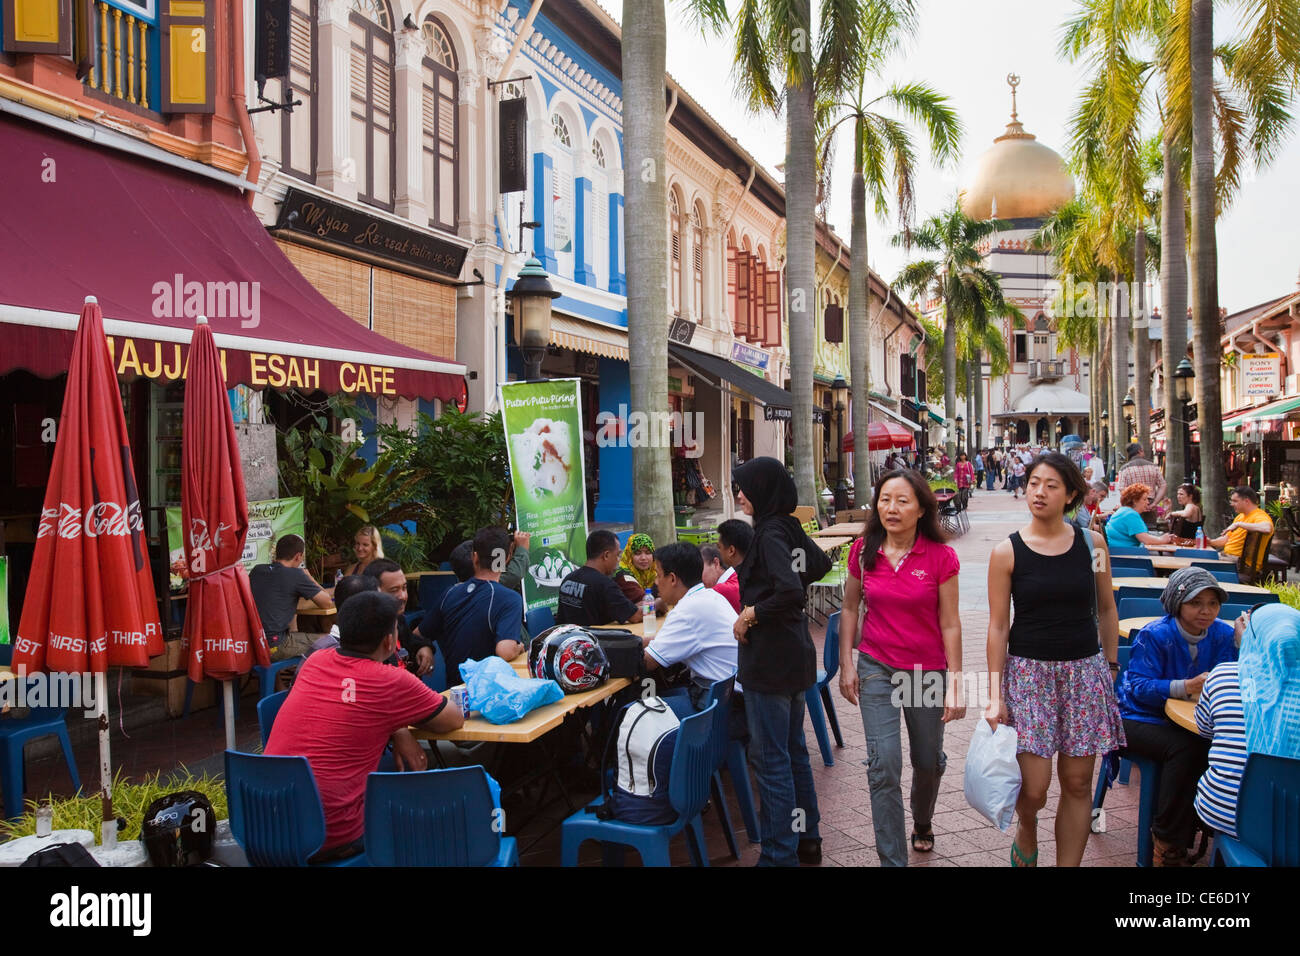 View along Bussorah Mall in the Muslim quarter of Kampong Glam, Singapore - Stock Image